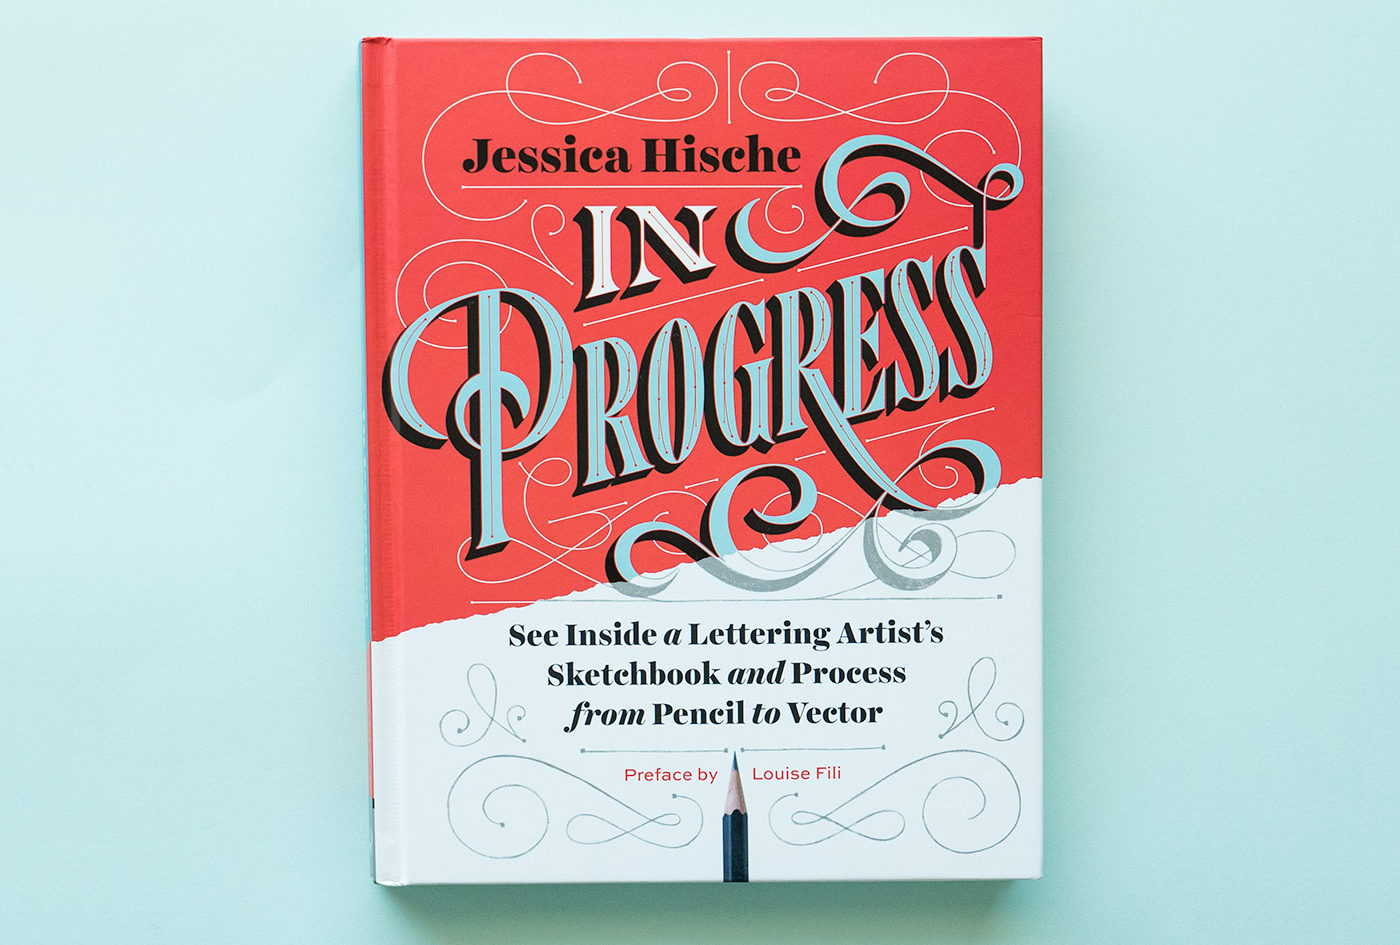 Jessica Hische's book, In Progress